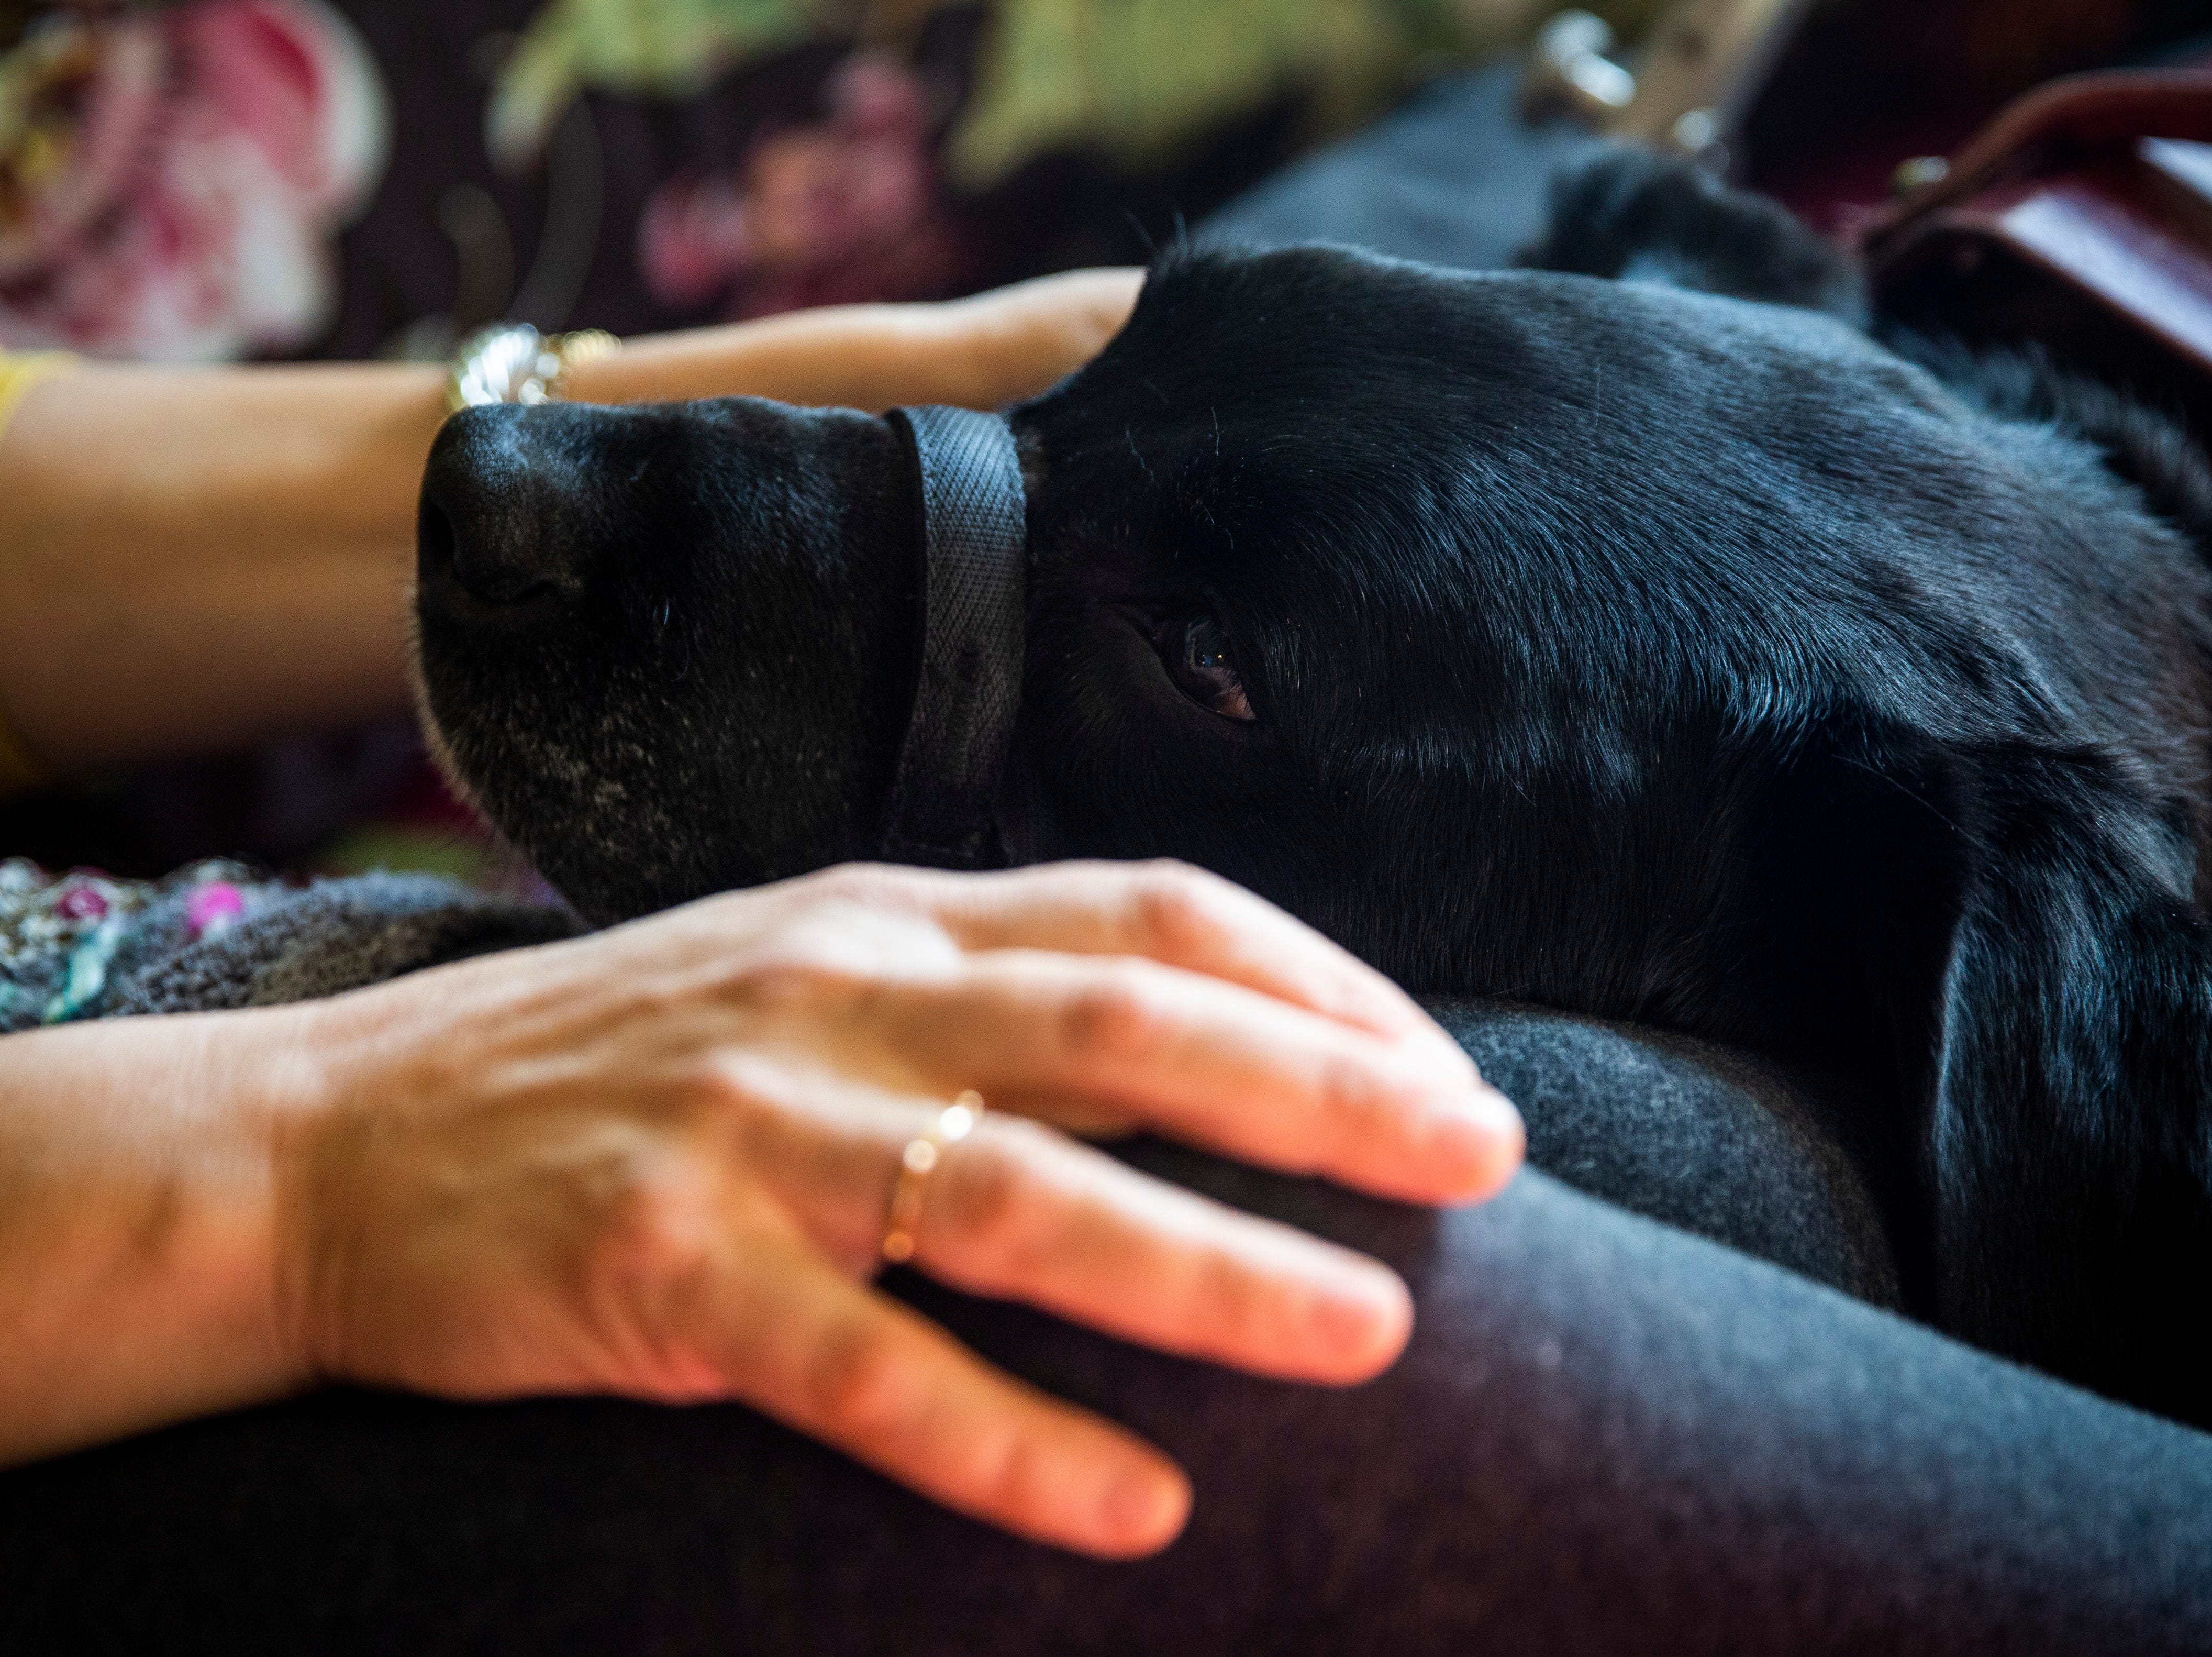 Lynn Hertel pets her service dog, Dutch, as he rests his head on her lap on Tuesday, Dec. 11, 2018, at her home in North  Naples. Hertel says there's nothing more comforting than a dog, and a large part of Dutch's job is to provide her with emotional support and to help her relax.